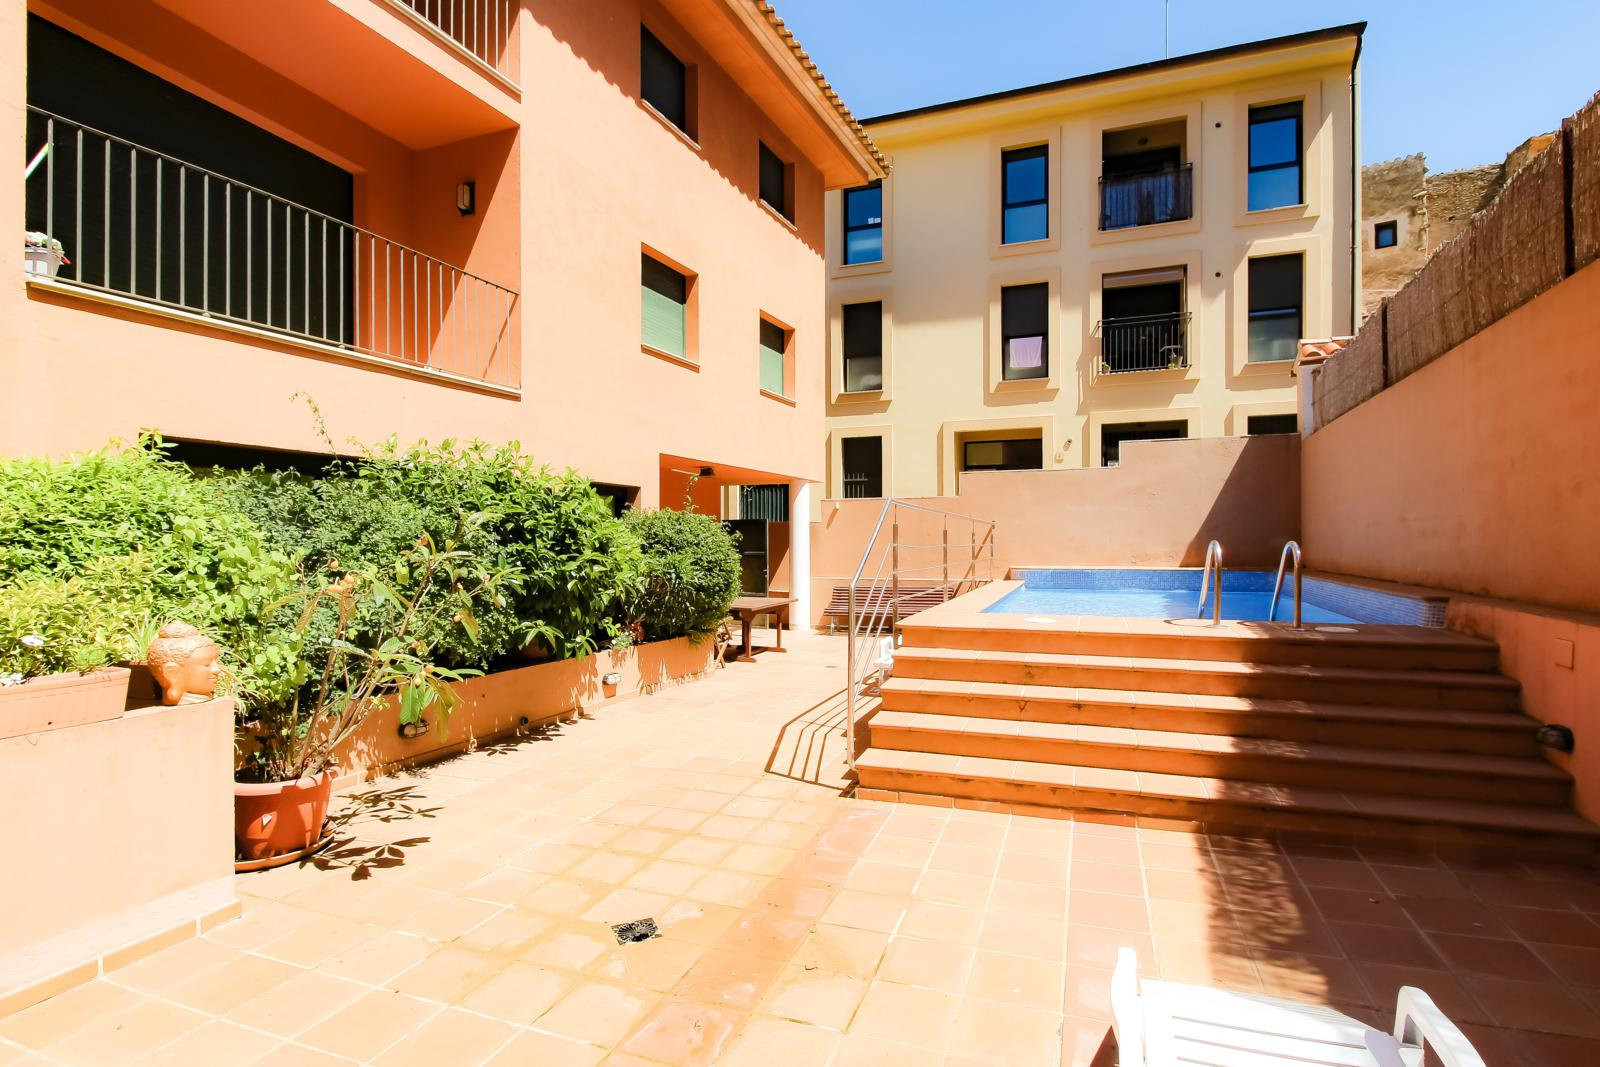 SANT JOSEP 2 1 apartamento en pleno casco antiguo de Begur dispone de terraza piscina comunitaria y plaza de aparcamiento, Apartment in Begur, on the Costa Brava, Spain  with communal pool for 4 persons.....